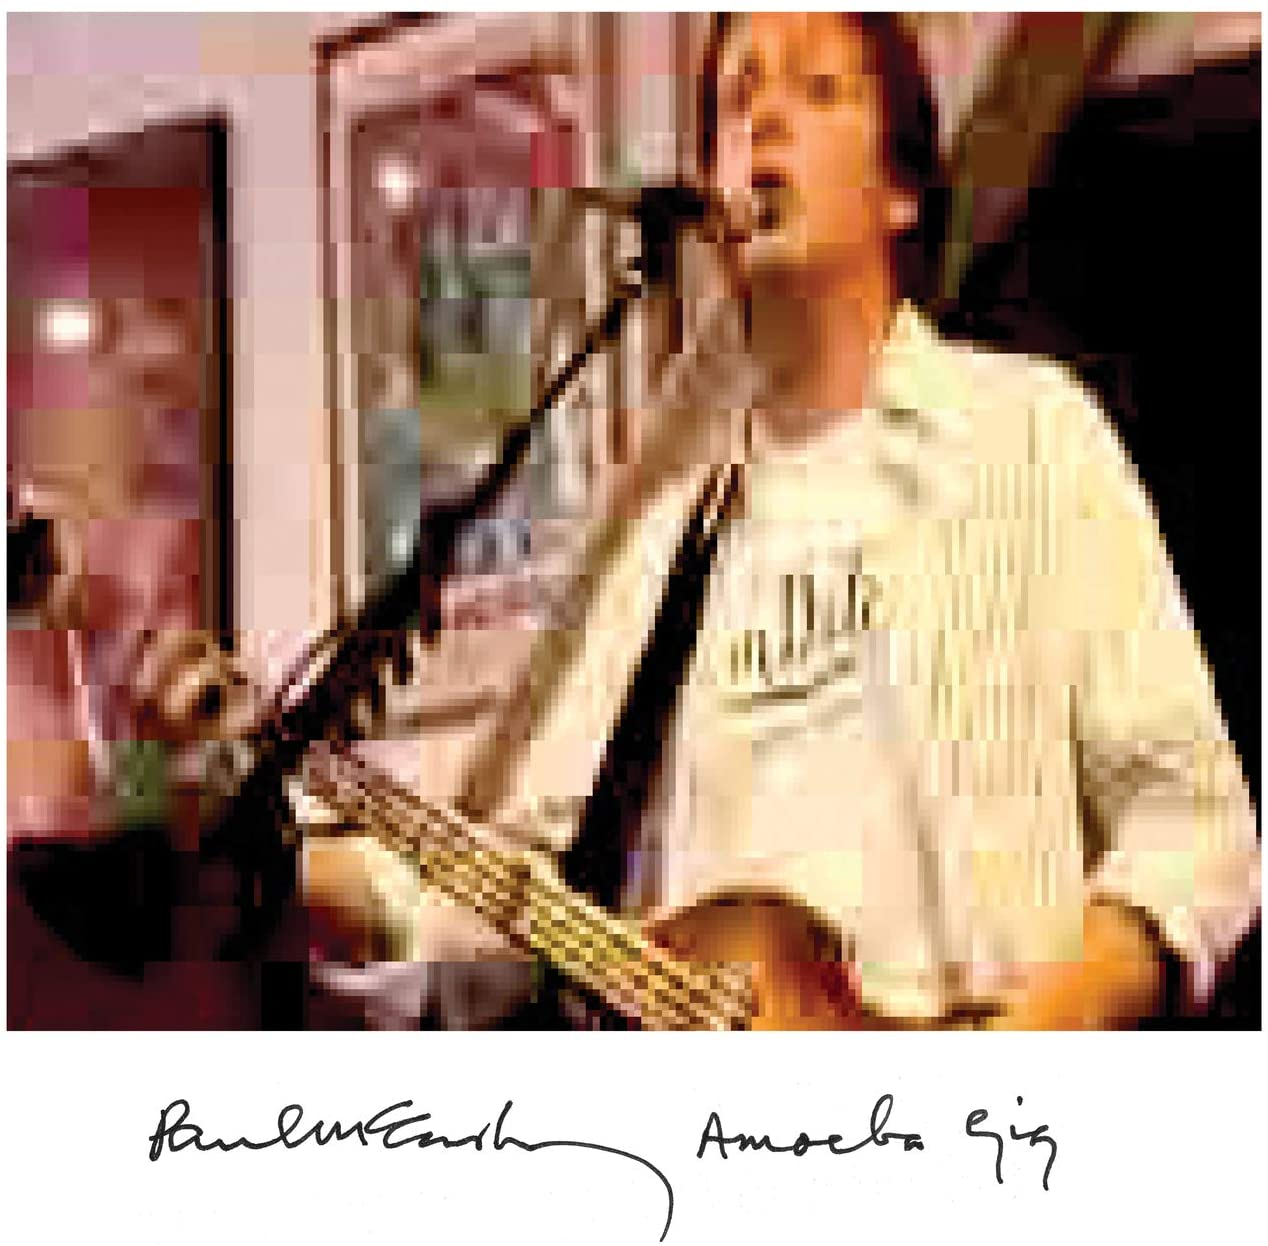 McCartney, Paul/Amoeba Gig [CD]